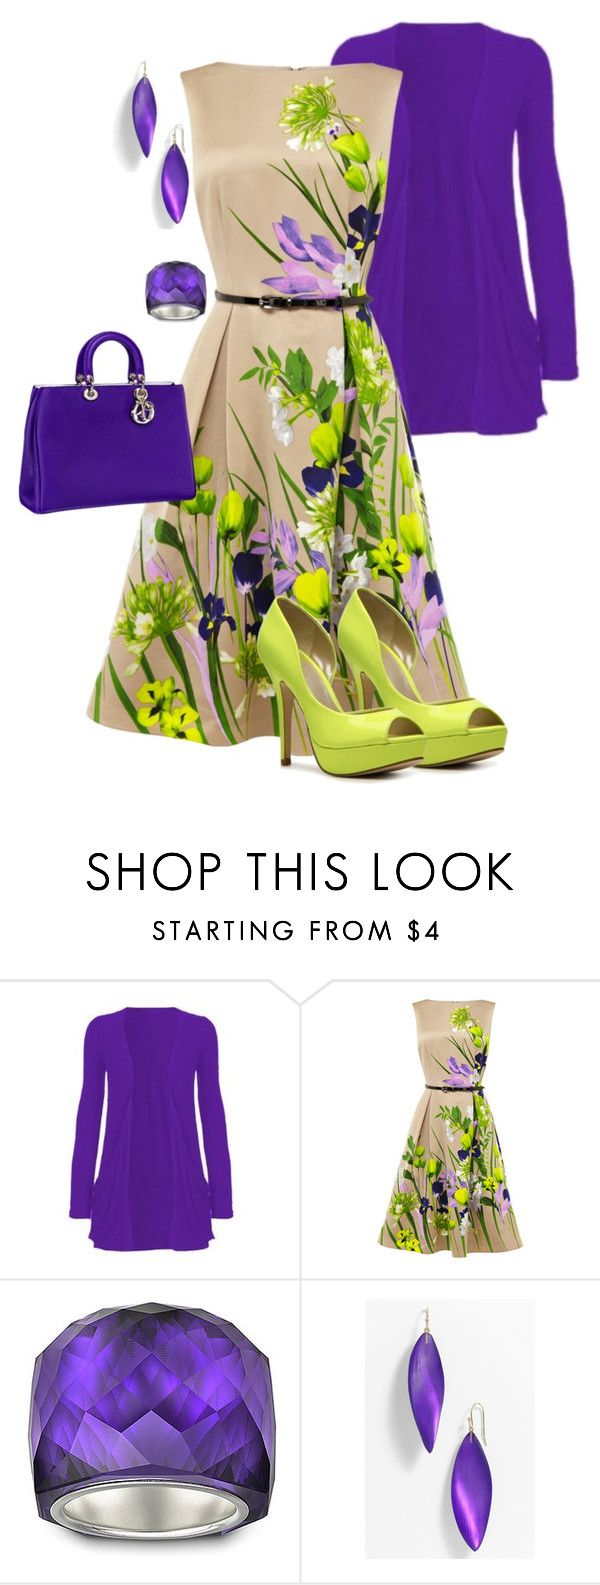 """Garden Party"" by arletamw ❤ liked on Polyvore featuring Coast, Christian Dior, Swarovski, Alexis Bittar, Fergalicious, green shoes, purple, purple purse and sundress"